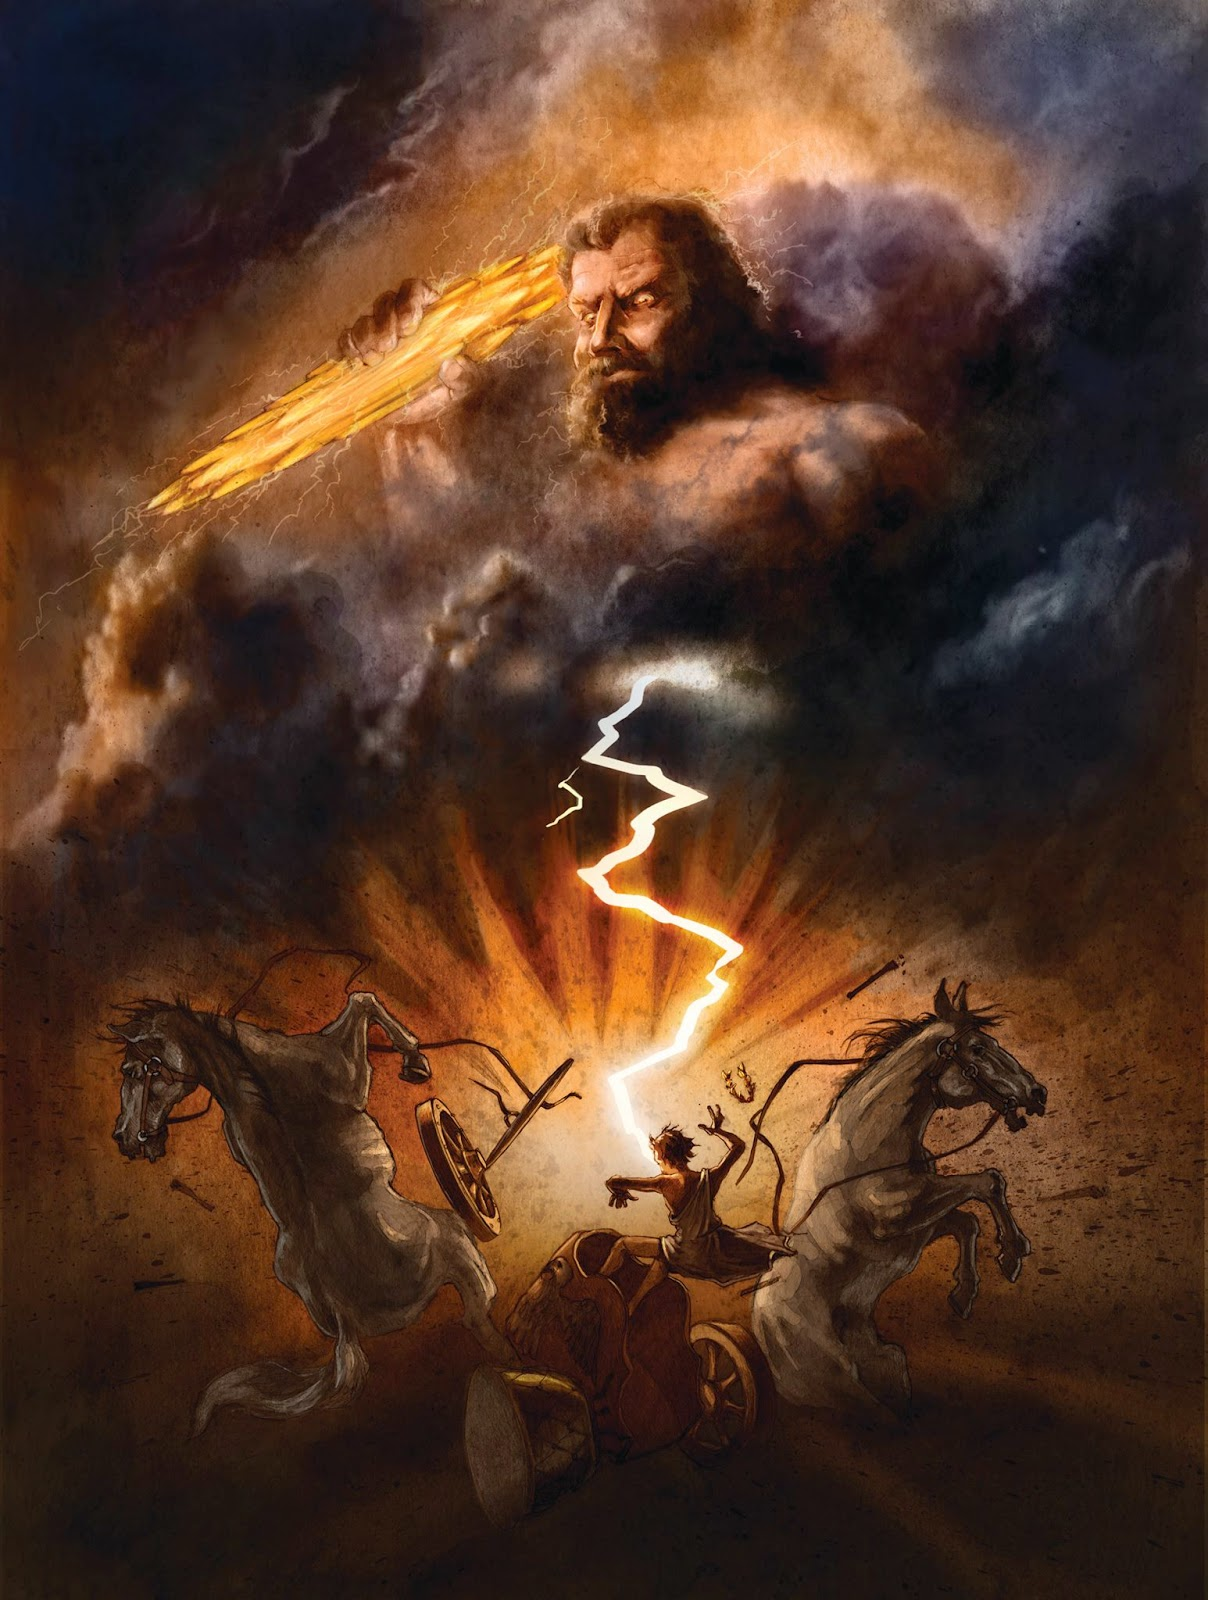 Percy Jackson's Greek Gods: Zeus